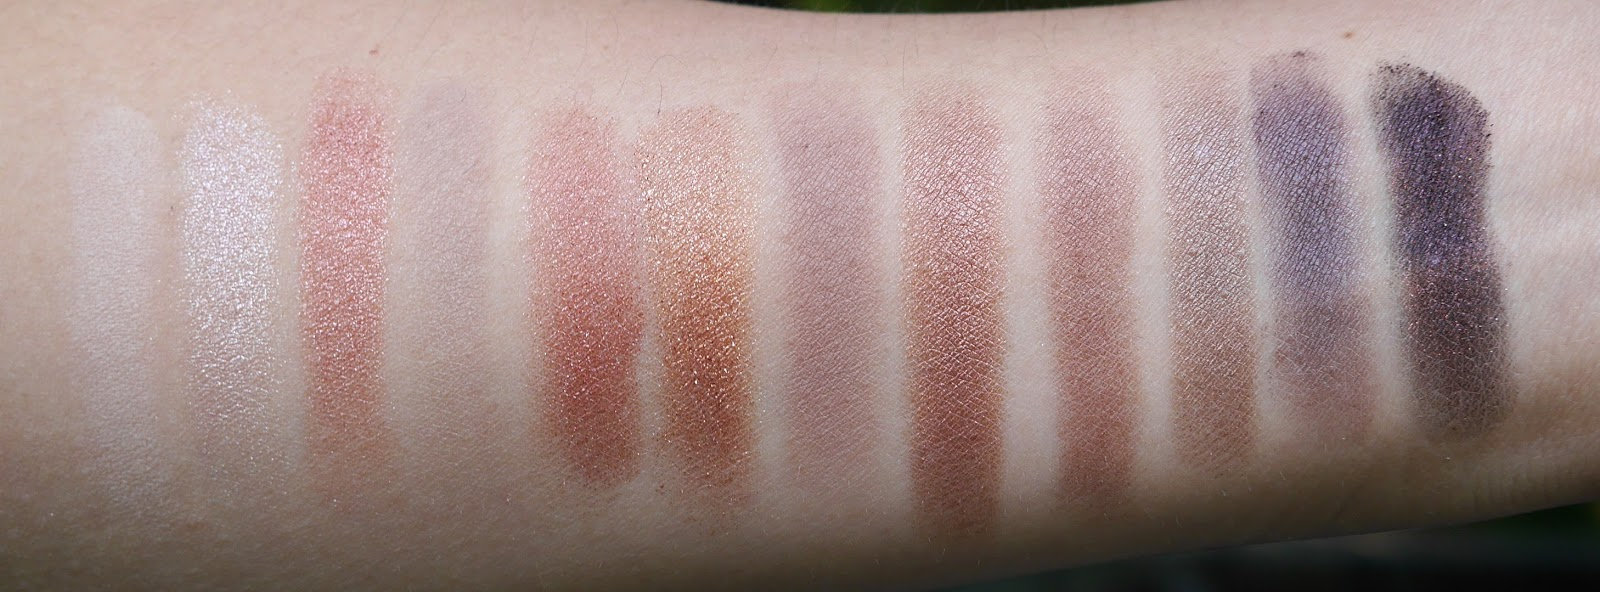 What I didn't realize when I started using the Iconic 3 was that it was a dupe for the Urban Decay Naked 3 palette. I also didn't realize that I would like ...